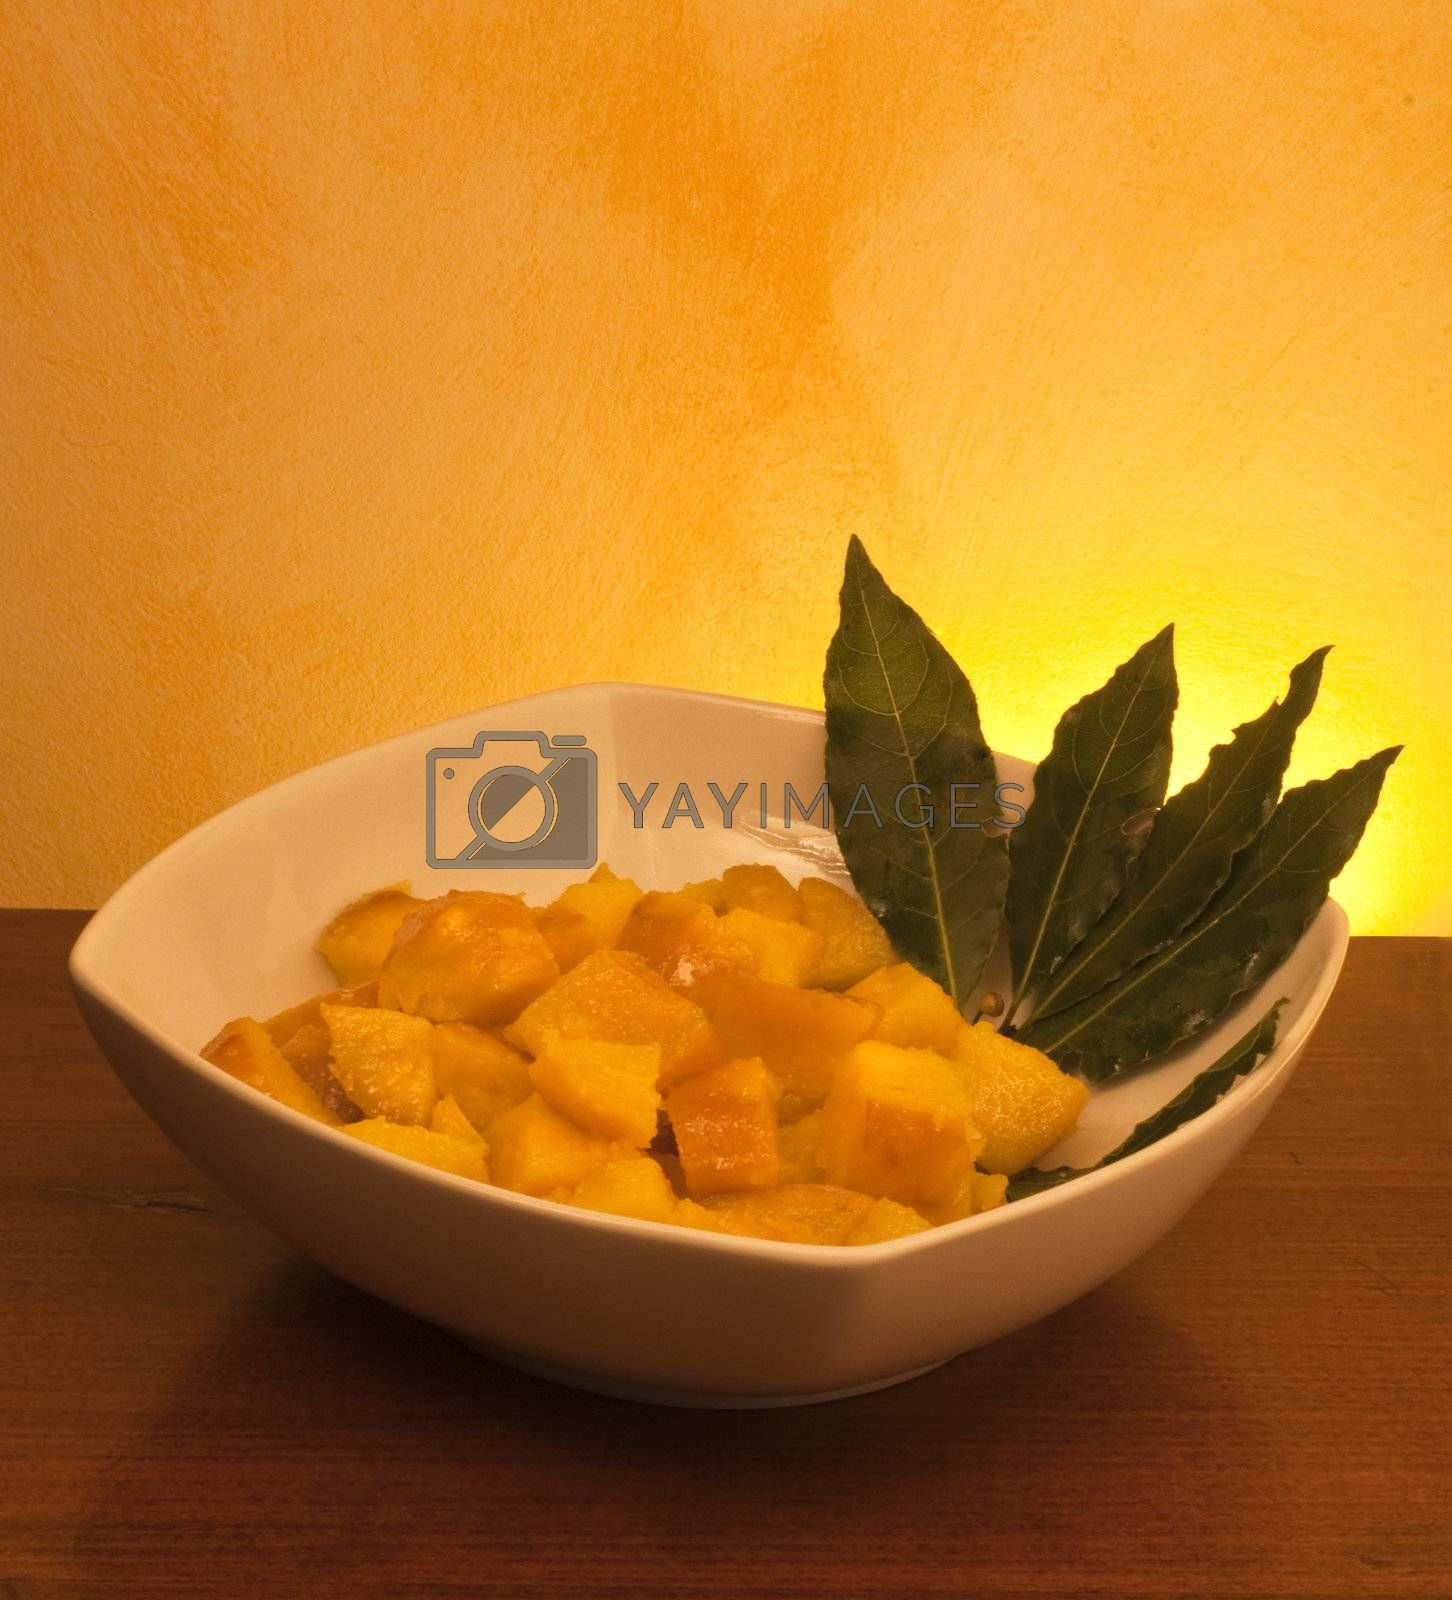 plate of boiled potatoes and seasoned background gradient